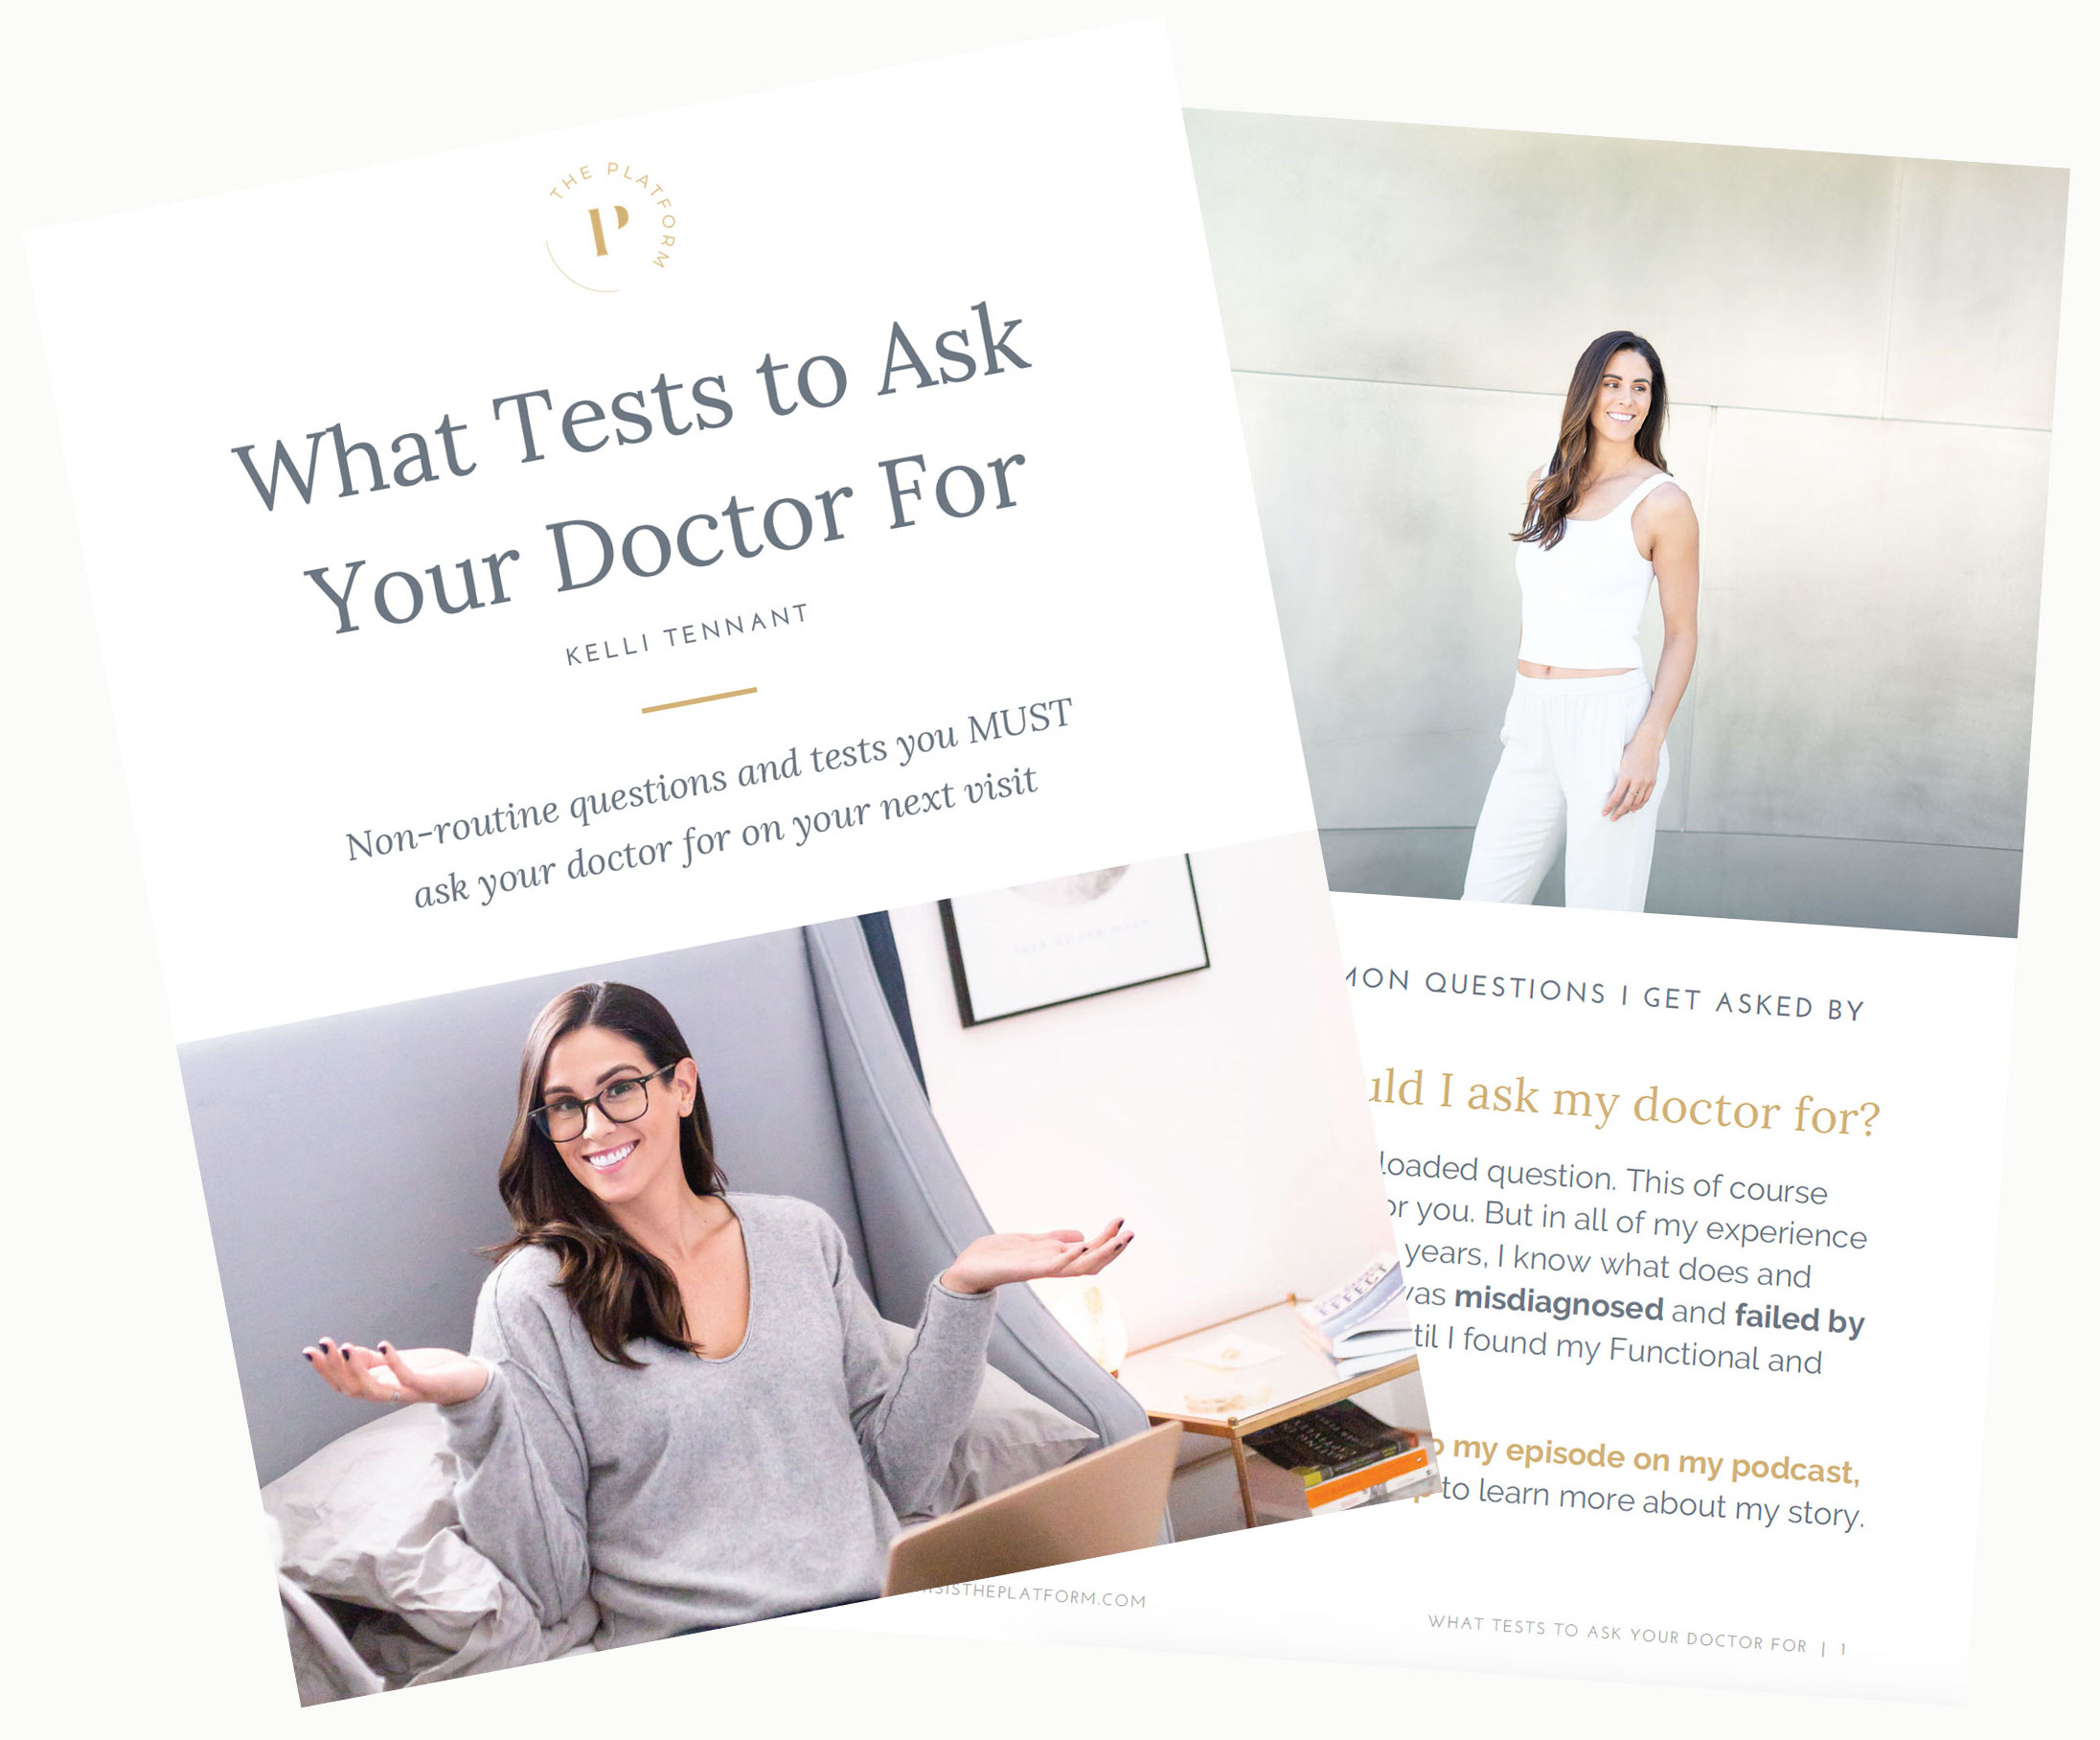 The quest to find a doctor who can arrive at a proper diagnosis can be difficult. I get it. I've been there, done that and have been misdiagnosed for 14 years…  Download my FREE   guide  below so you can learn what tests to ask your doctor for that will help you speed up the process of getting a proper diagnosis and finally healing. autoimmune illness, autoimmune disease, healing, chronic illness, chronic pain, fatigue, inflammation,